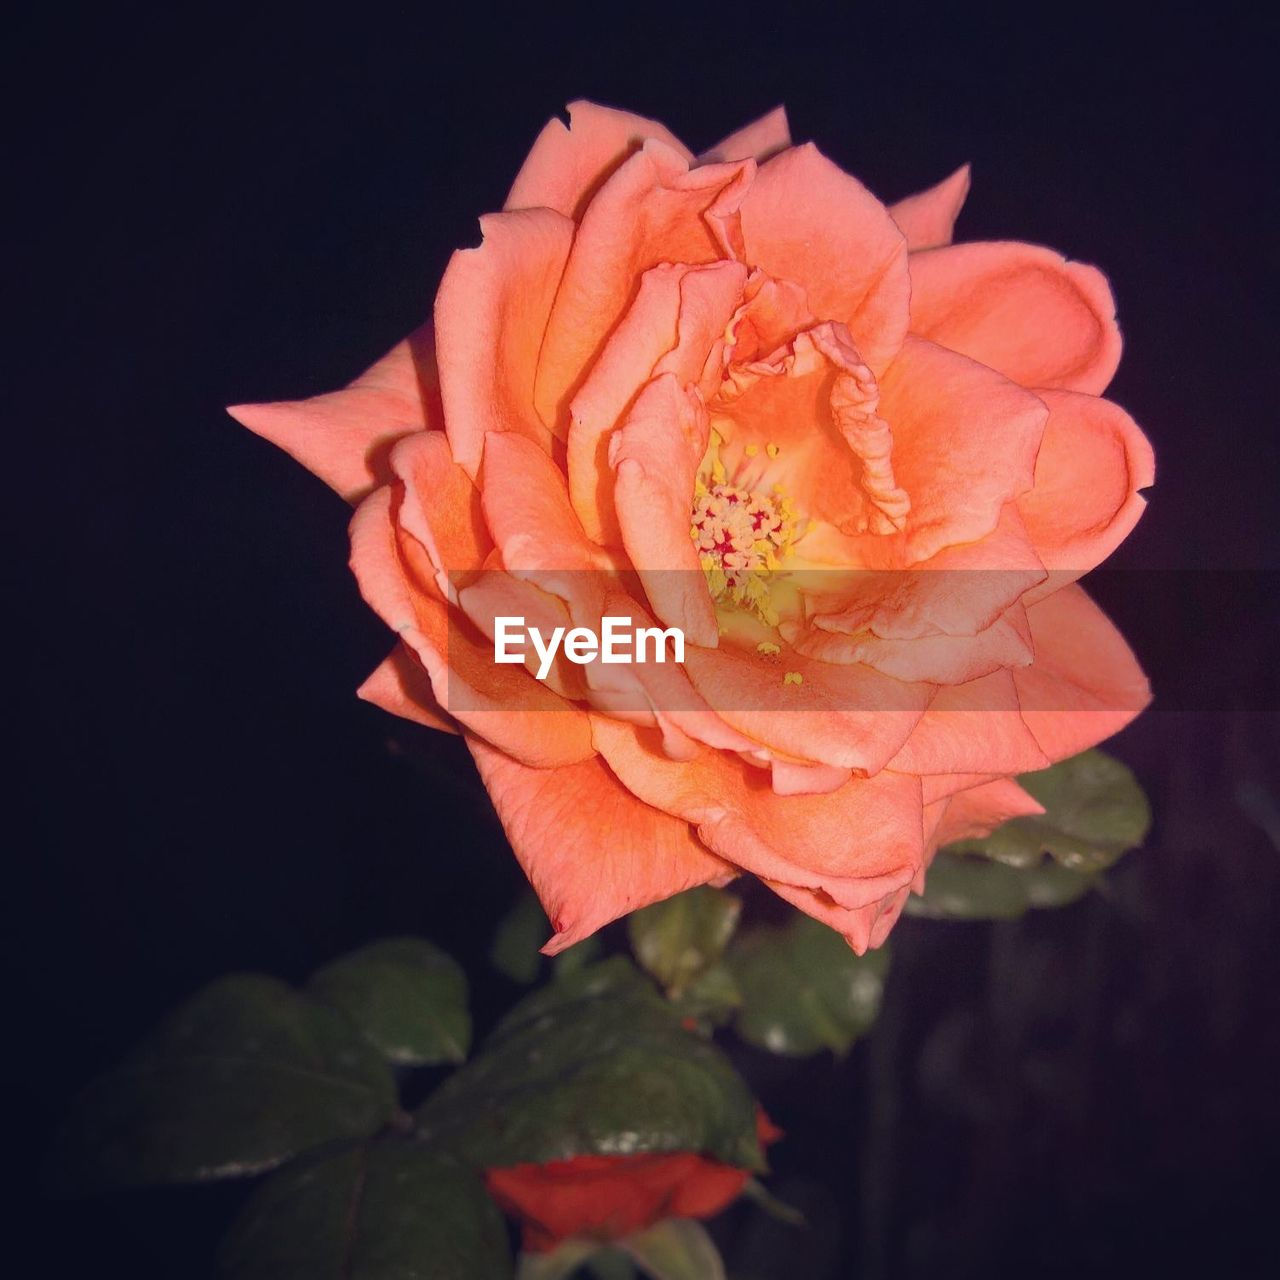 flower, petal, nature, beauty in nature, rose - flower, flower head, plant, fragility, leaf, black background, growth, close-up, freshness, no people, blooming, outdoors, night